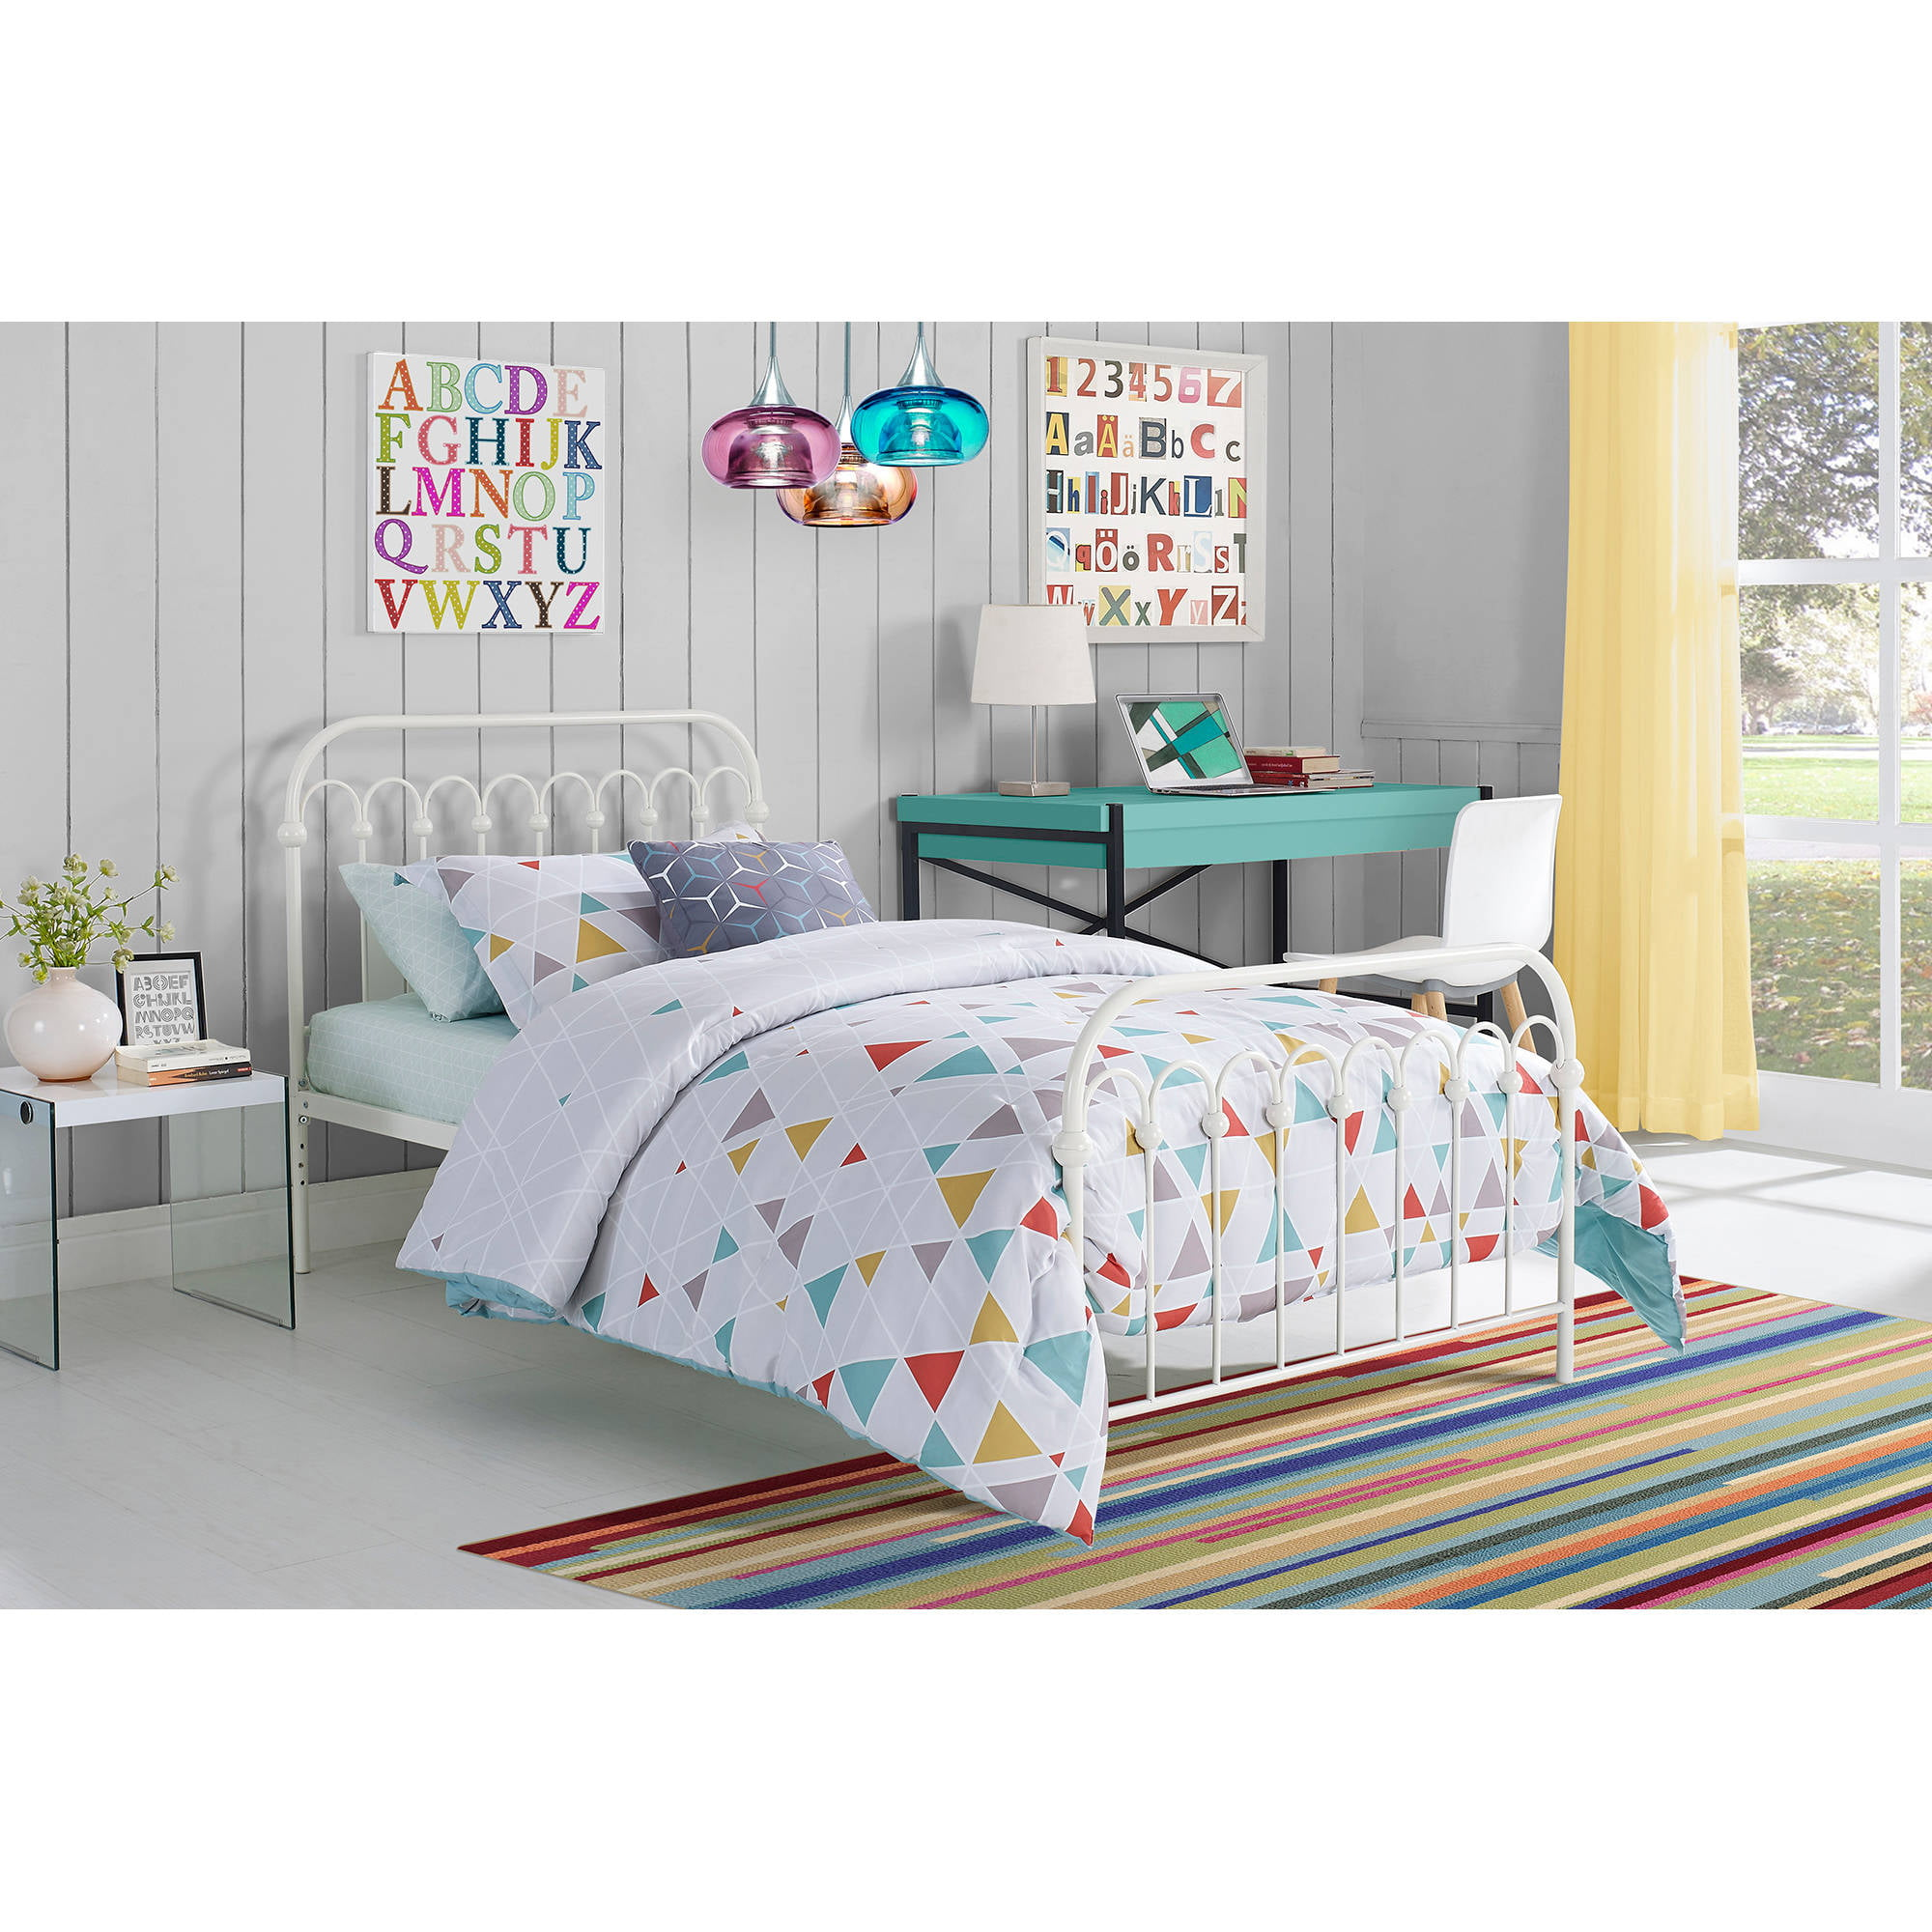 9 by Novogratz Bright Pop Twin Metal Bed  Multiple Colors   Walmart com. 9 by Novogratz Bright Pop Twin Metal Bed  Multiple Colors